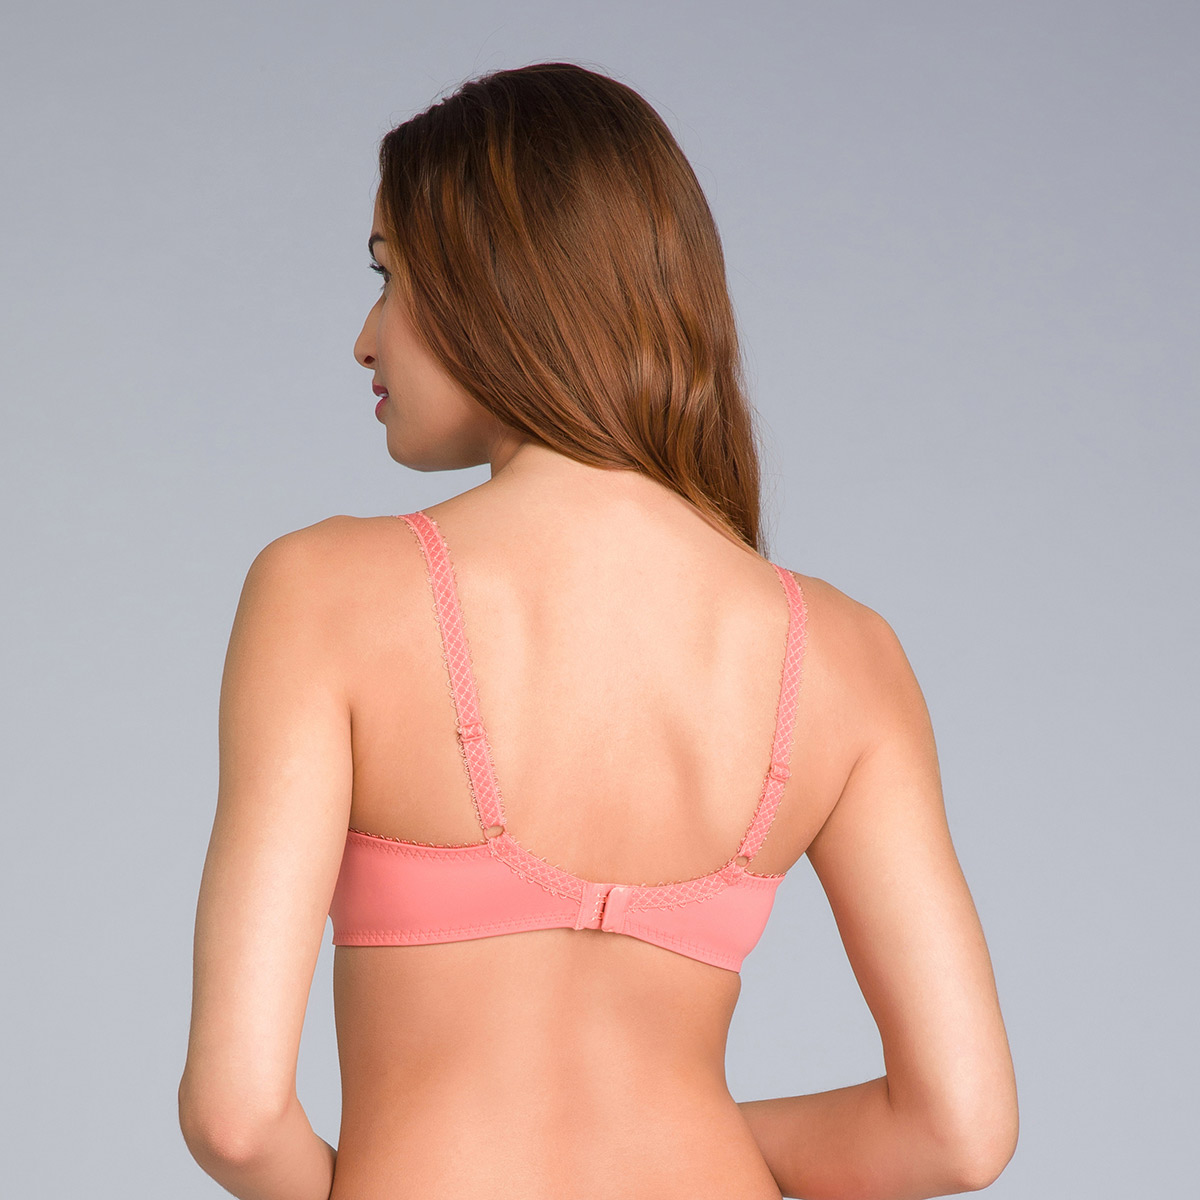 Balcony Lace Bra in Cinnamon Orange - Flower Elegance - PLAYTEX